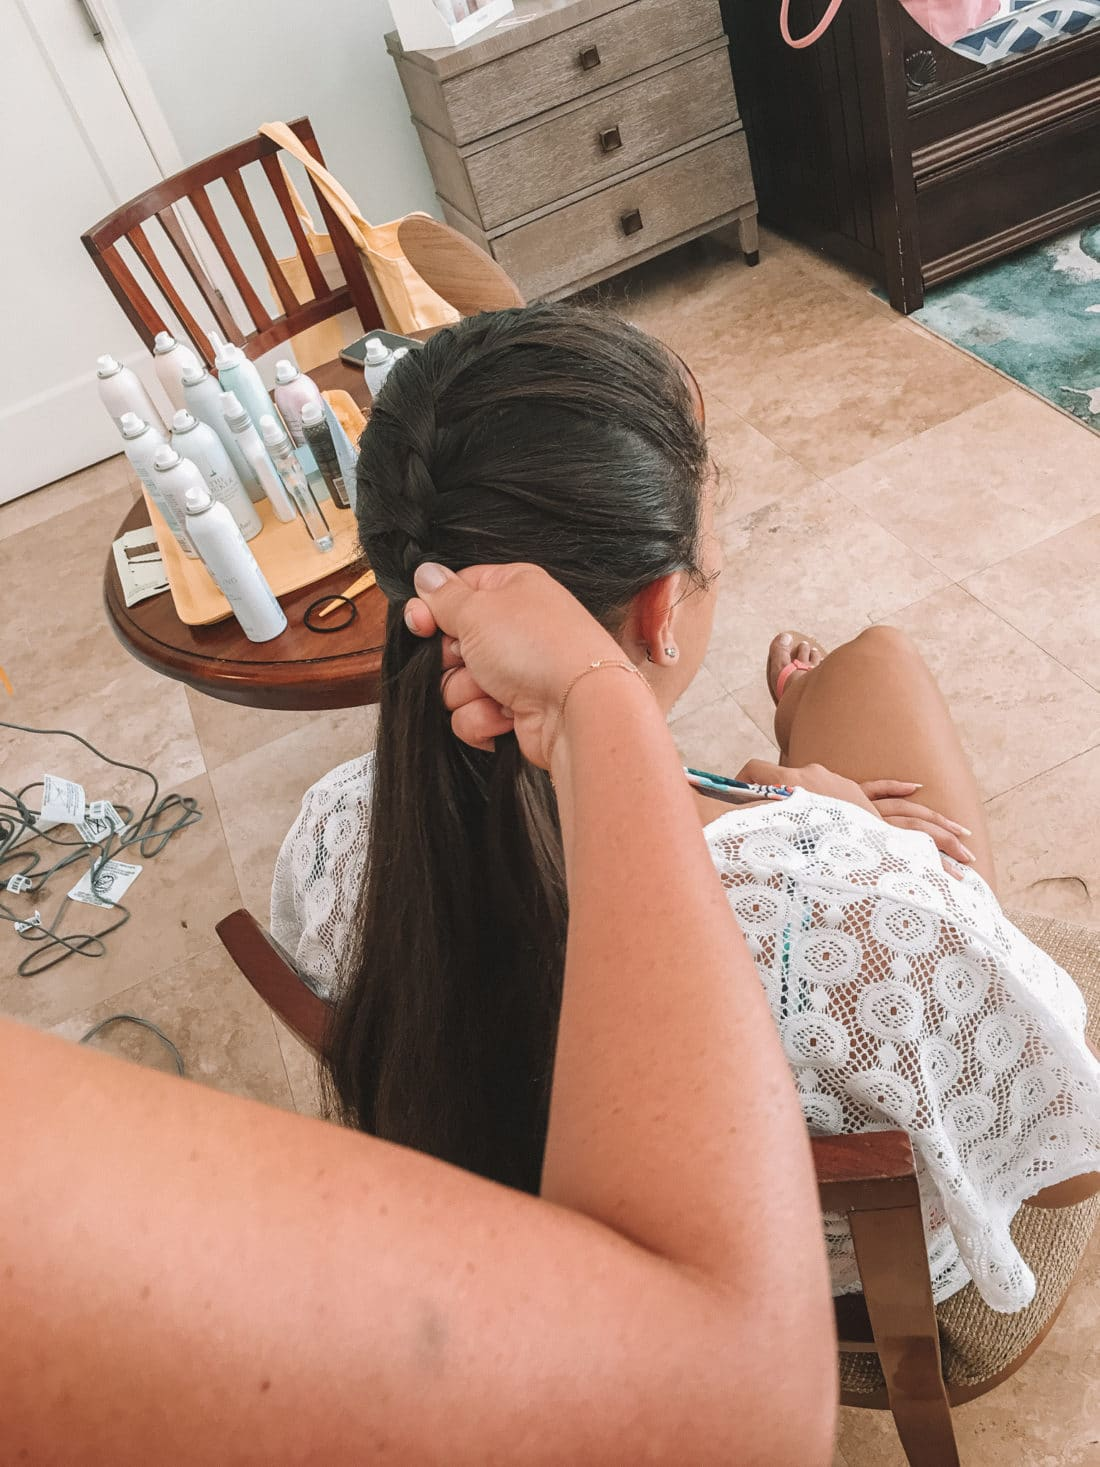 Jay Mermaid Hair Drybar Experience. My first time experiencing Drybar at Beaches Resorts in Turks and Caicos rocking a Mermaid Braid. Plus an Exclusive Interview with Alli Webb.